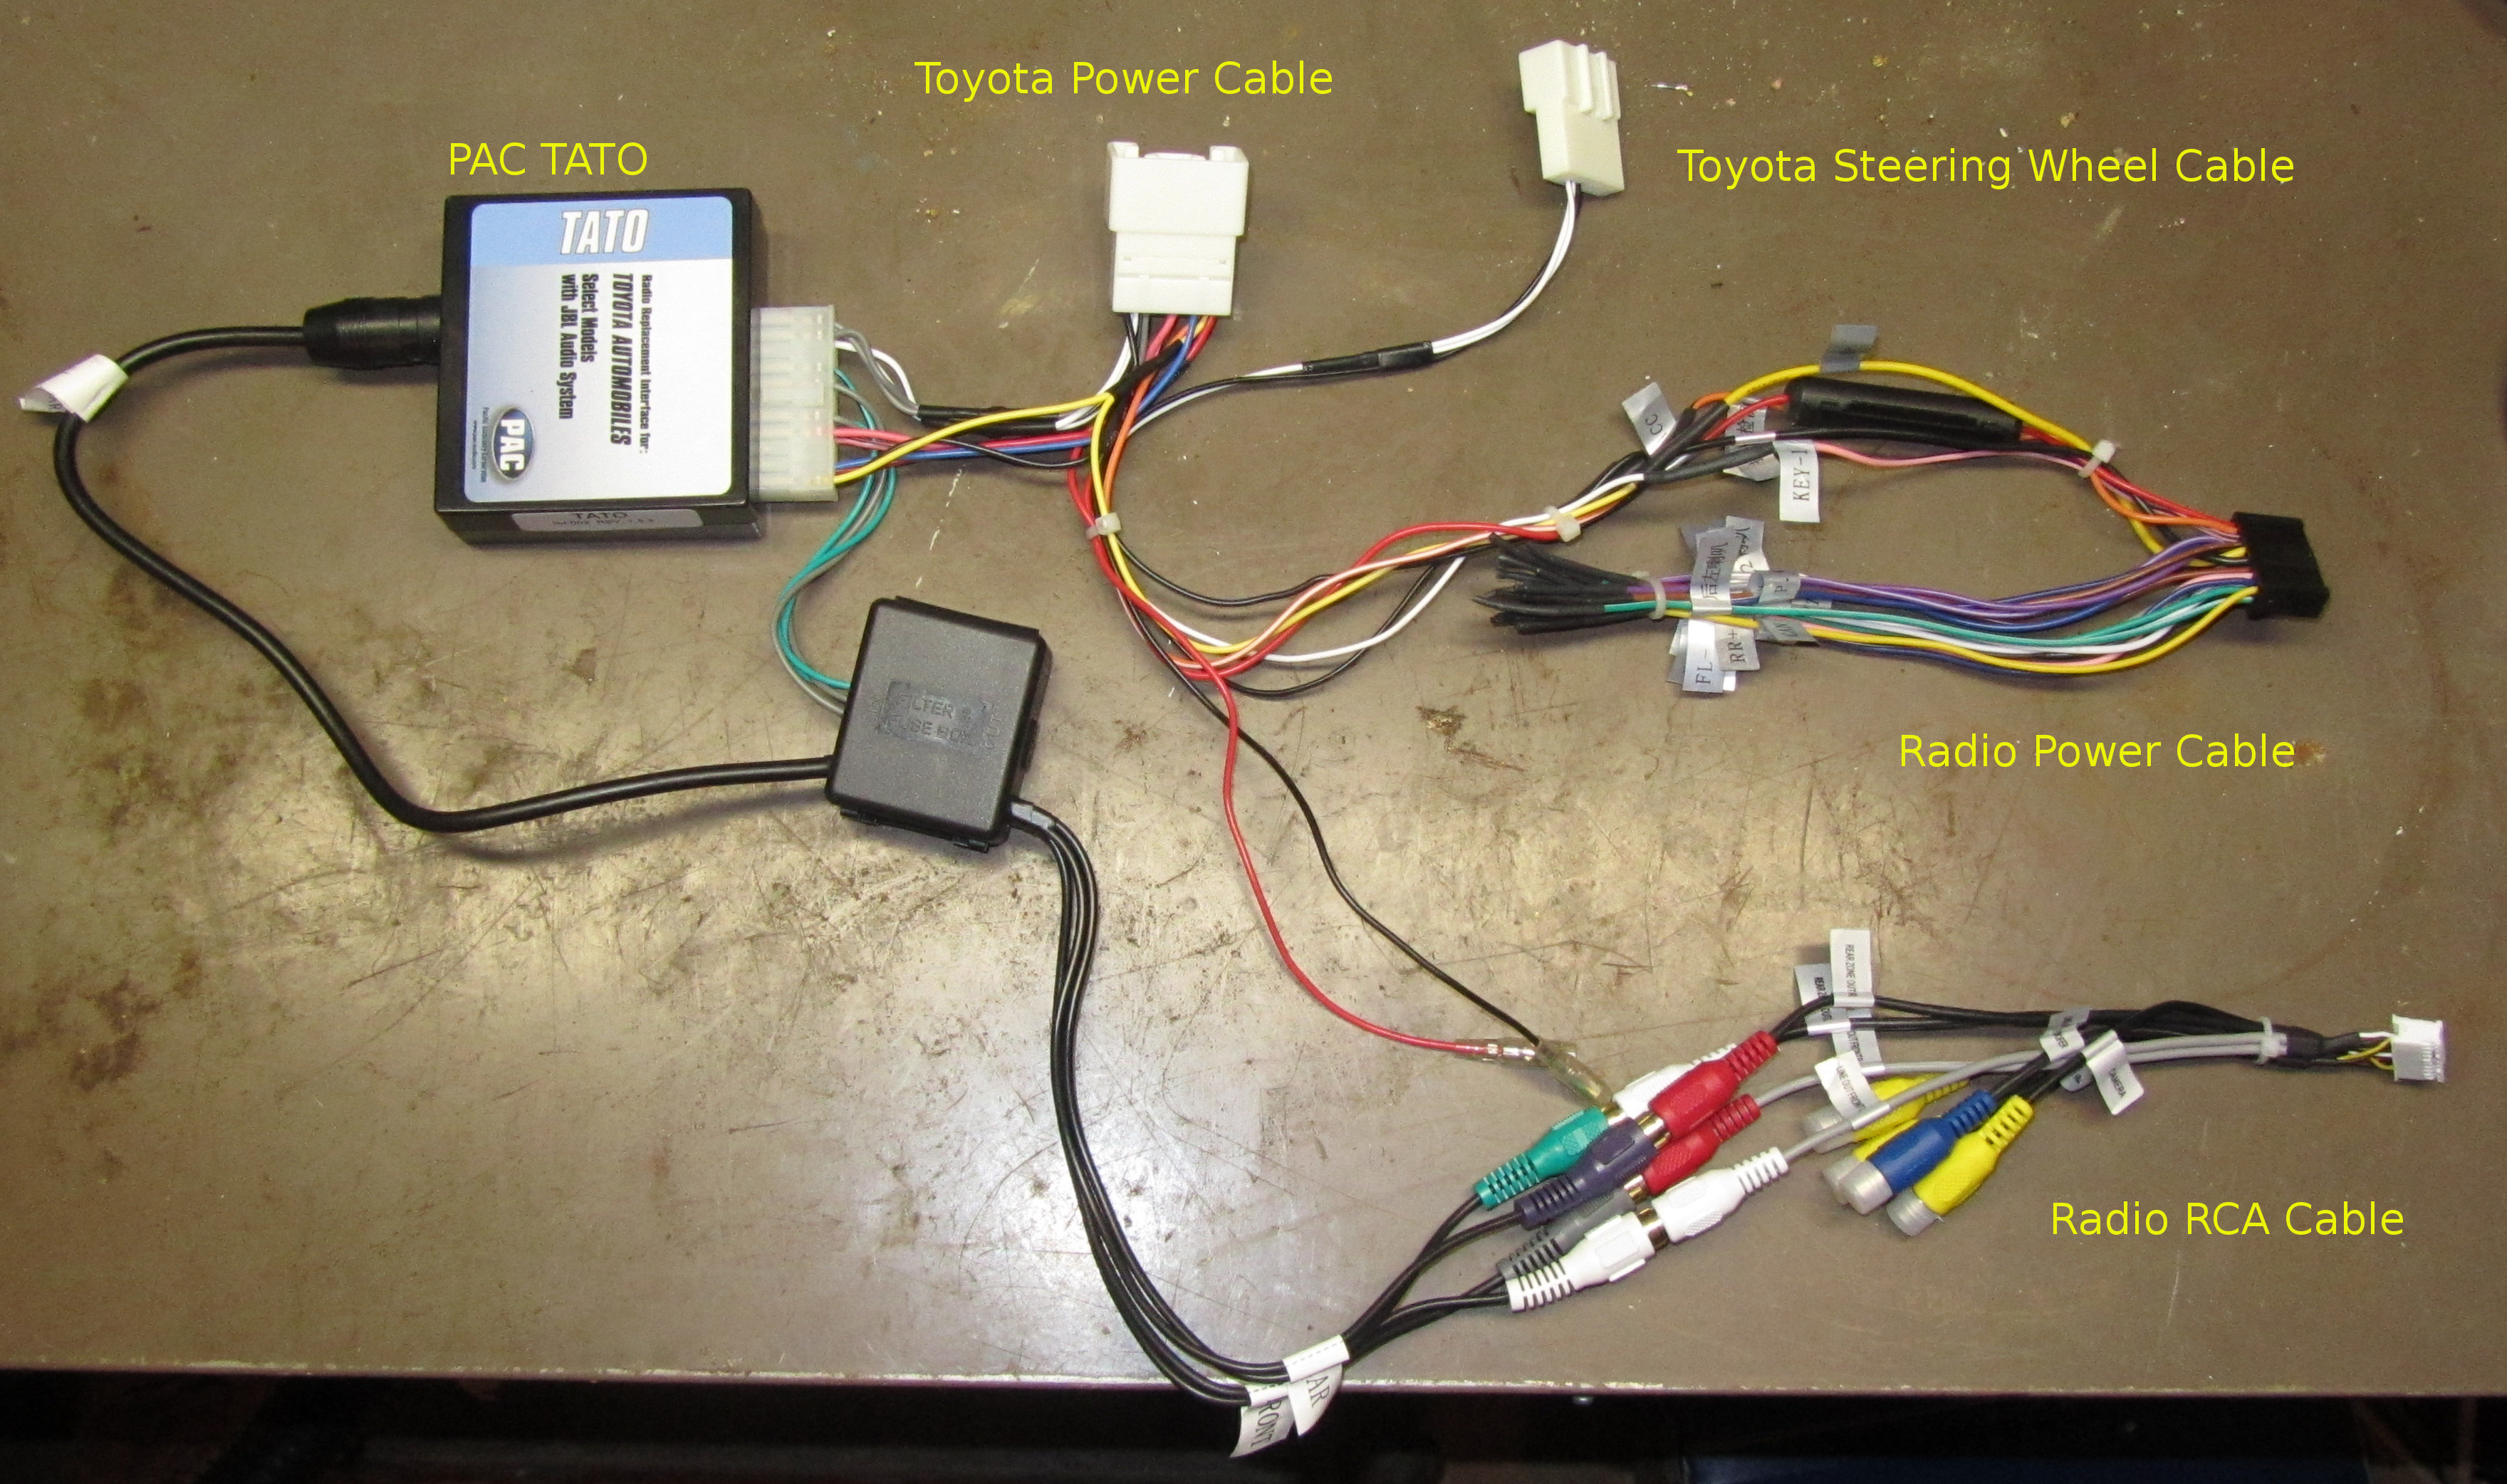 Rav4 Stereo Wiring Diagrams 2011 Diagram Android Radio Install The Treehouse Blog 2009